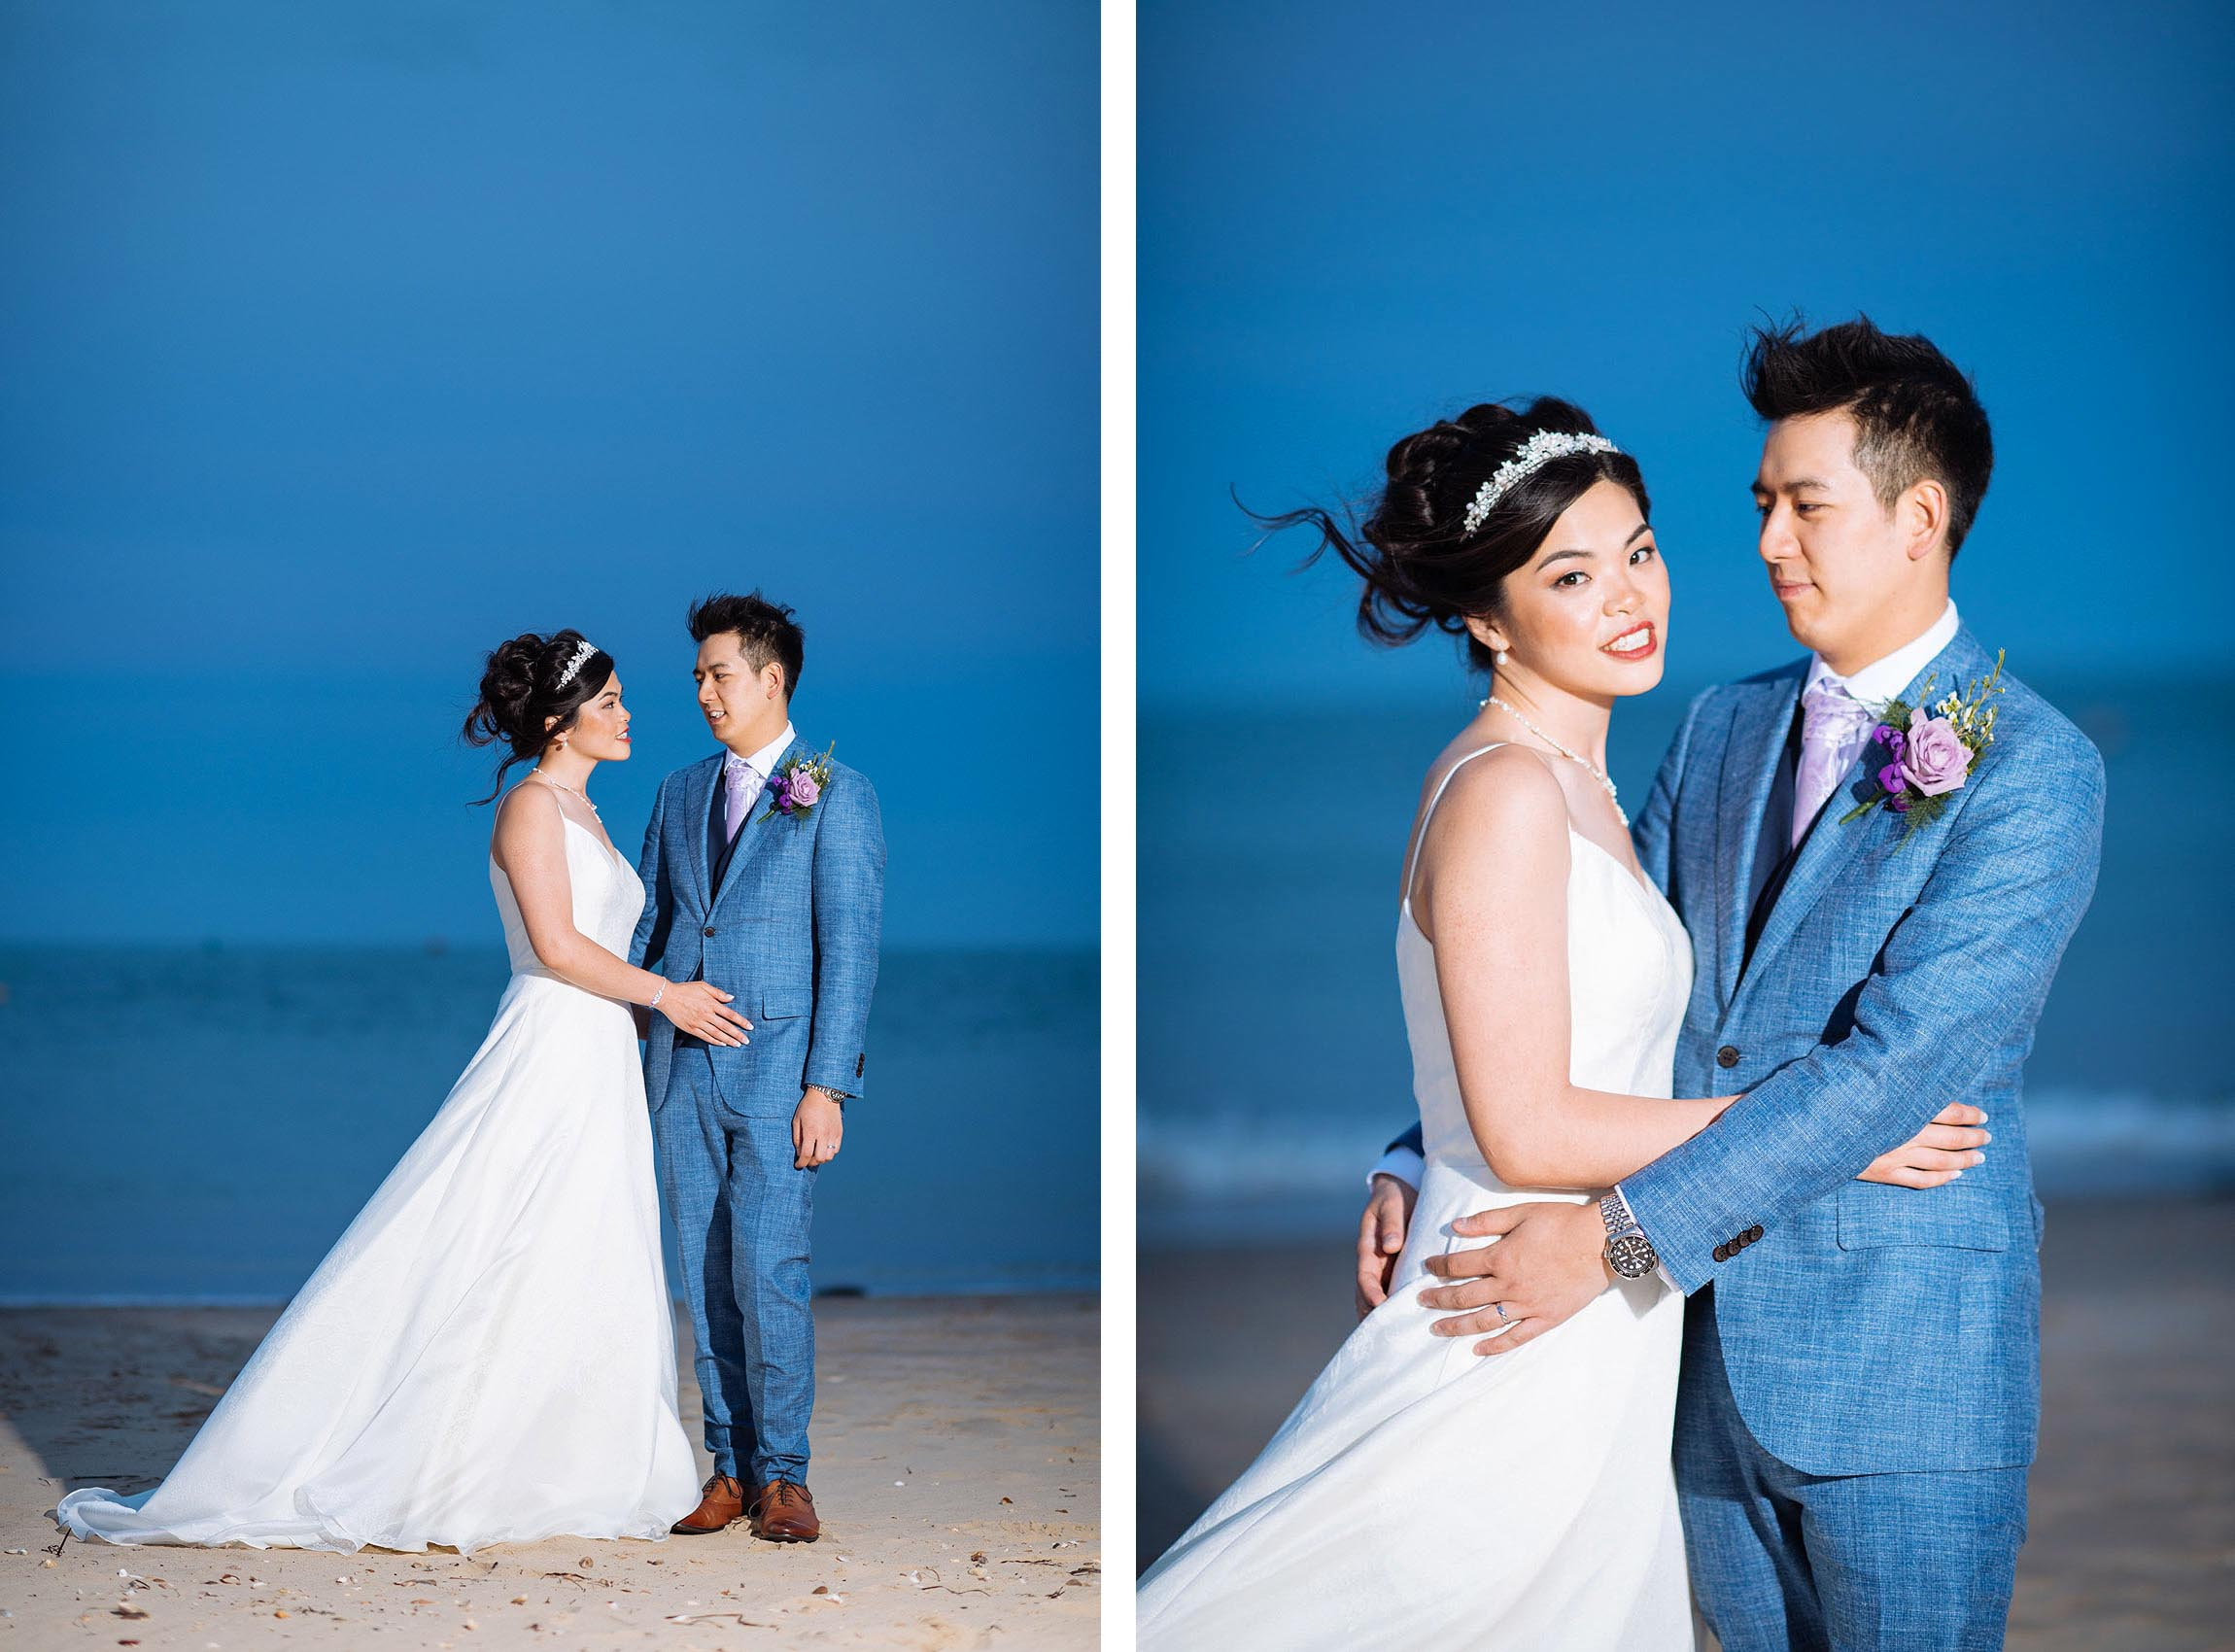 dorset-wedding-photographer-twilight-portrait-on-beach-profoto